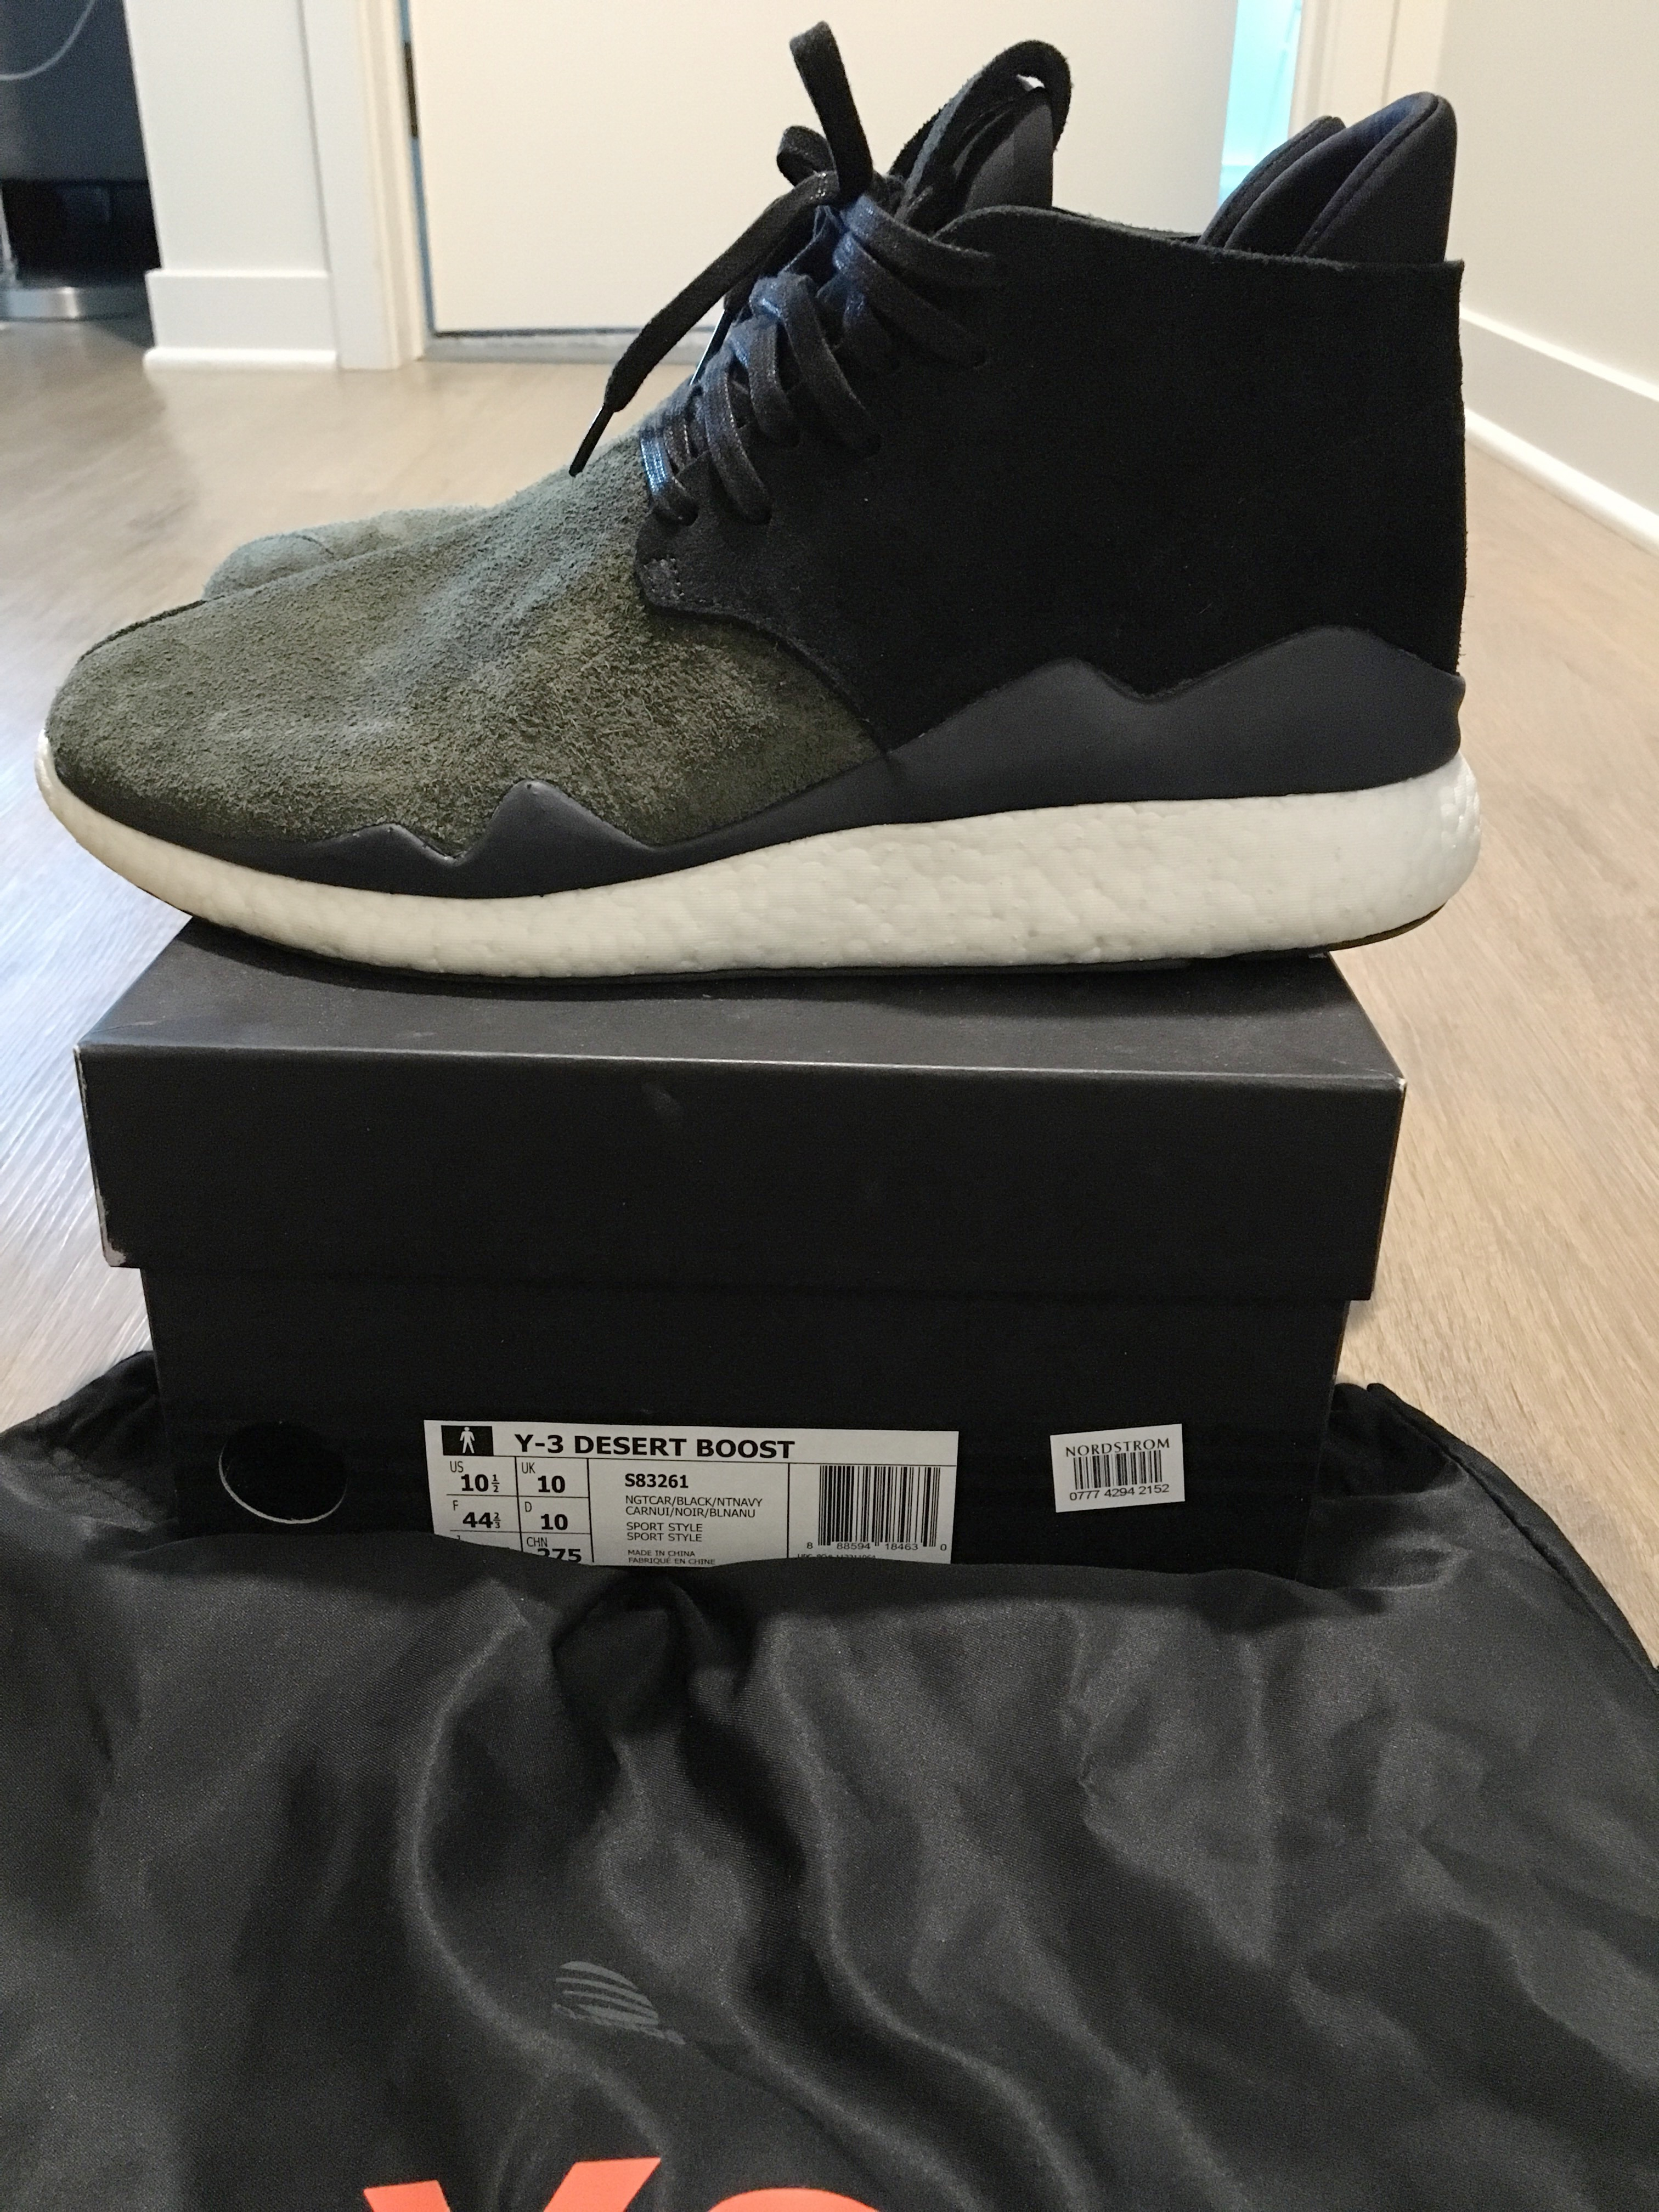 ae31ed0233791 Y-3 Y3 Desert Boost Olive Black Size 10 Size 10 - for Sale - Grailed